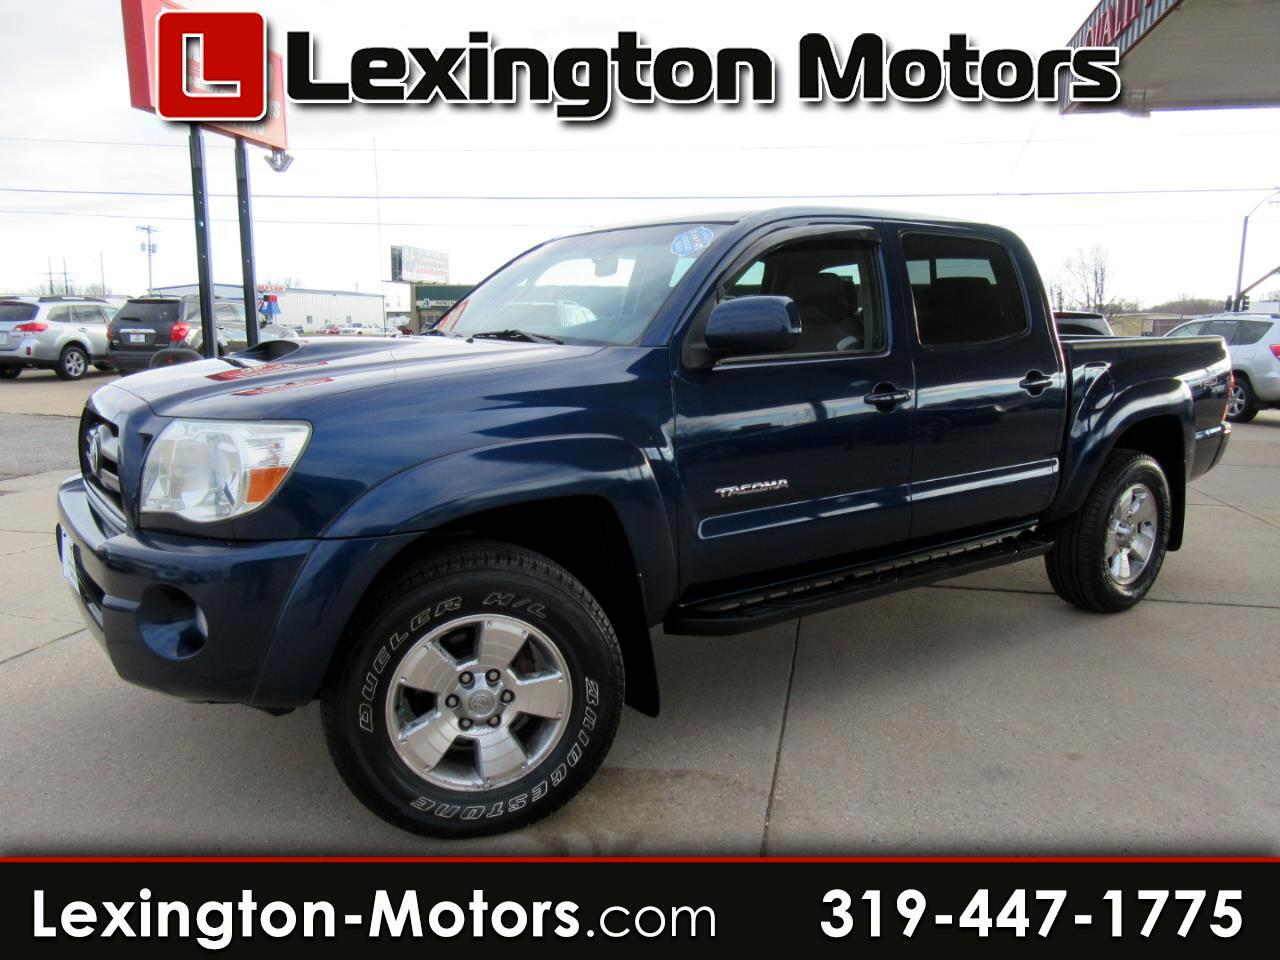 2005 Toyota Tacoma PreRunner Double Cab V6 Automatic 2WD TRD SPORT